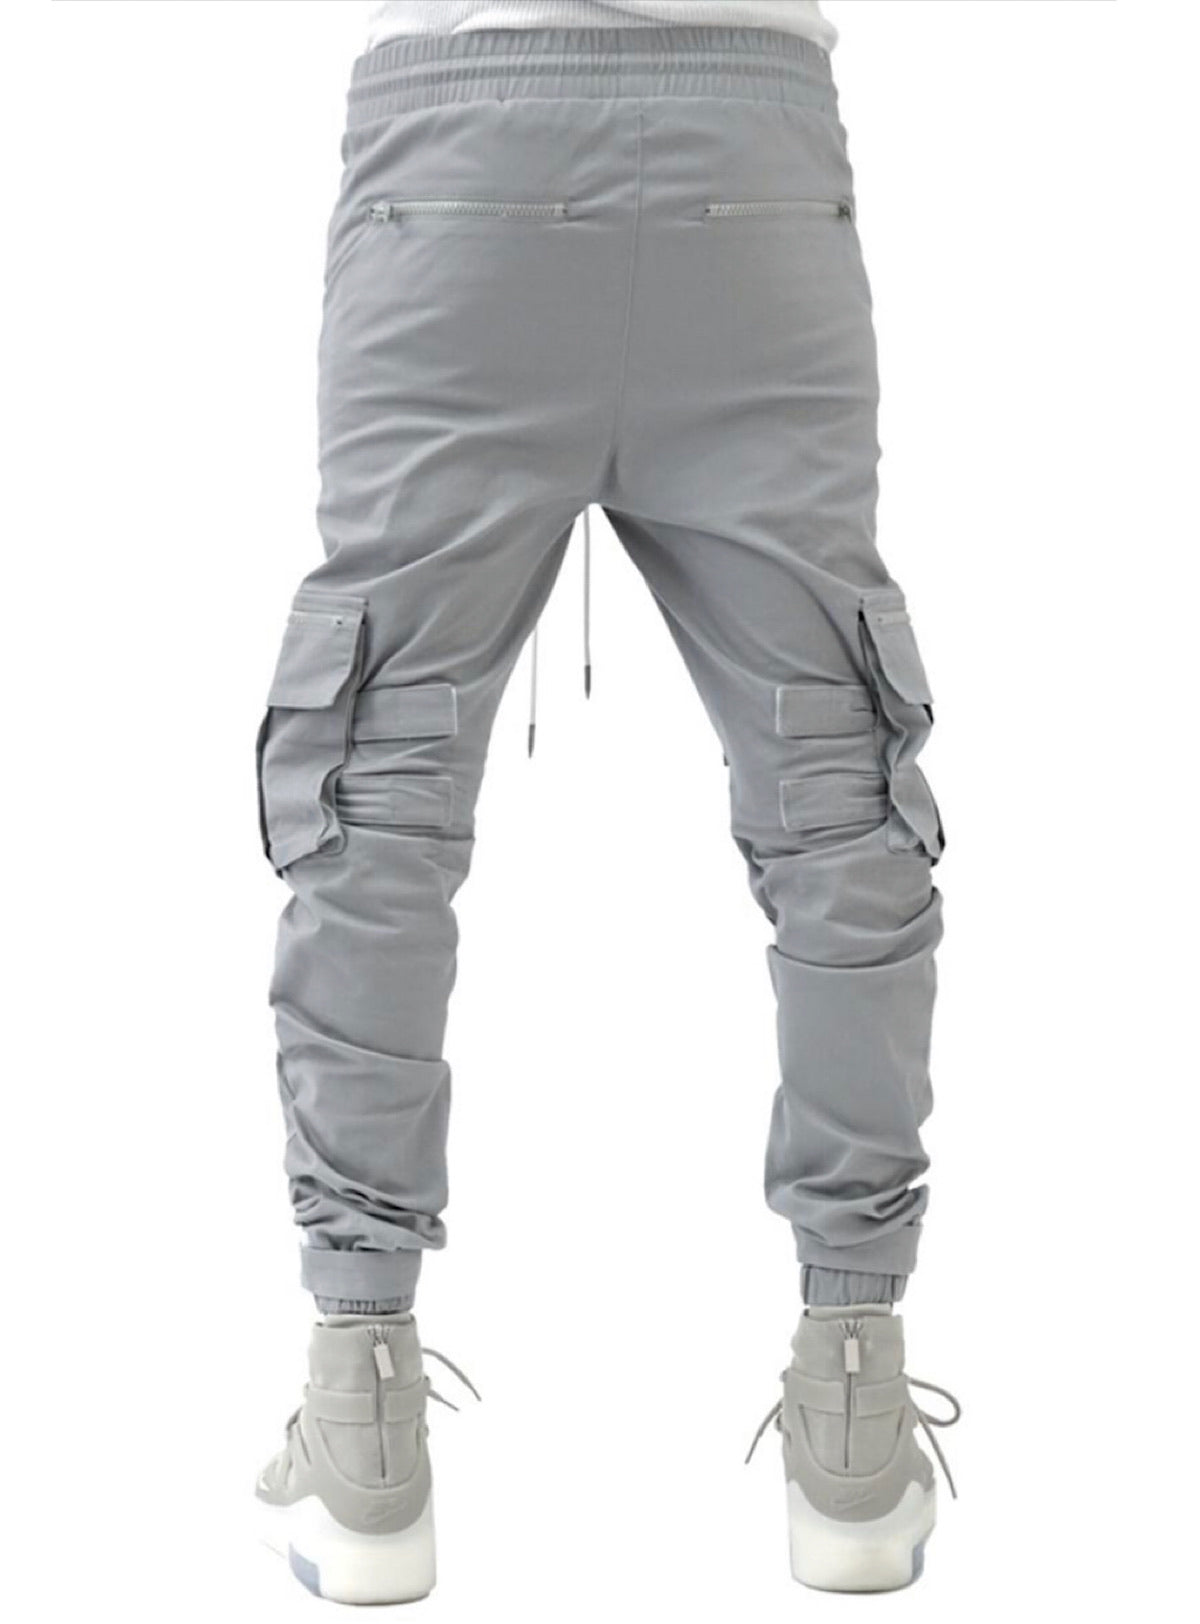 The Hideout Clothing Joggers - Eternal Energy Cargo - Light Grey - SU20-13